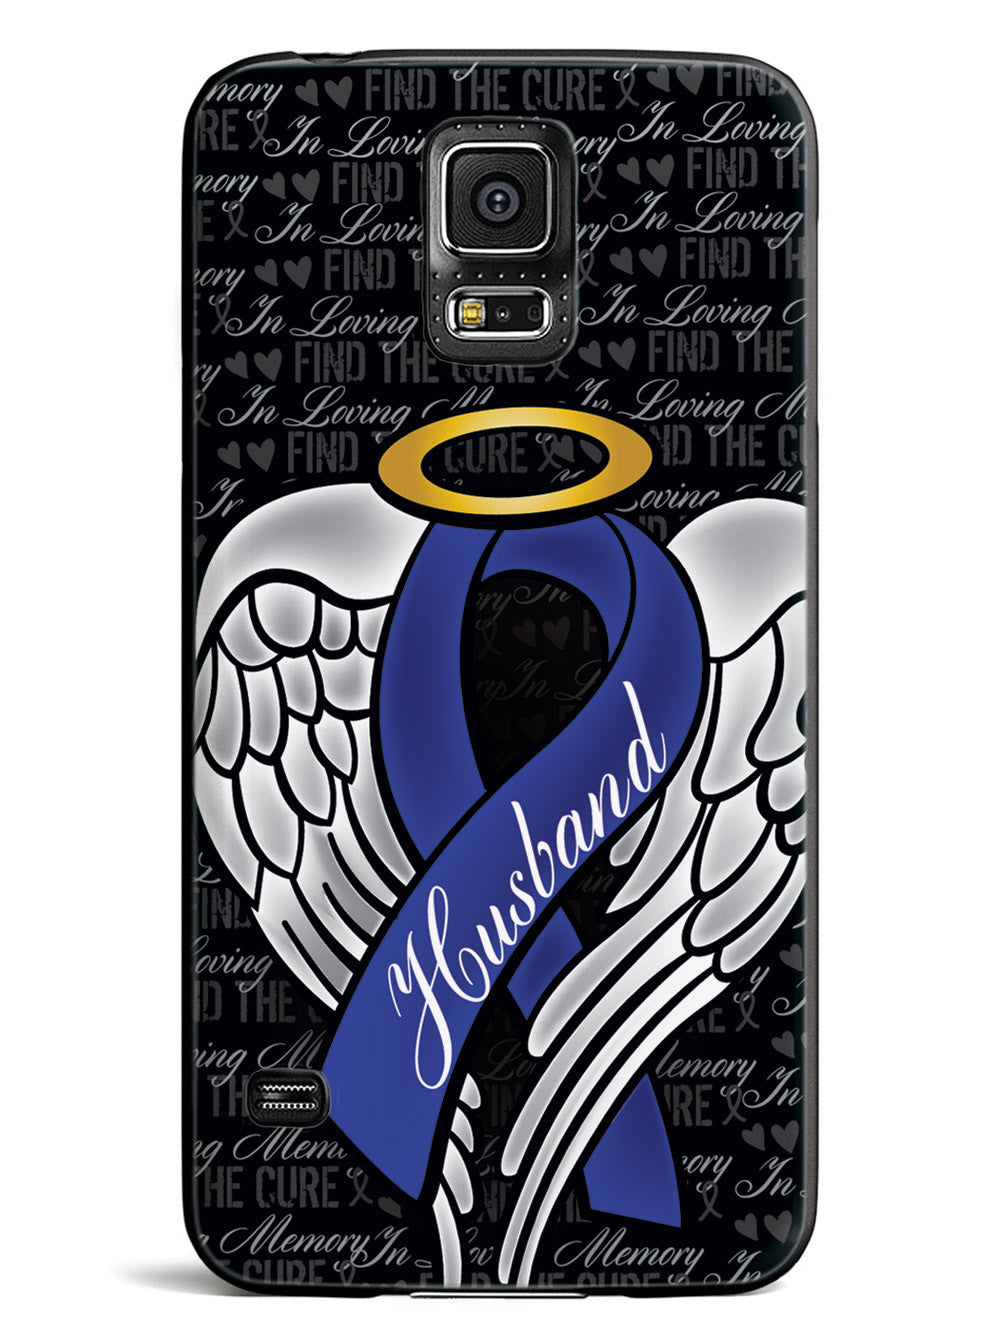 In Loving Memory of My Husband - Blue Ribbon Case